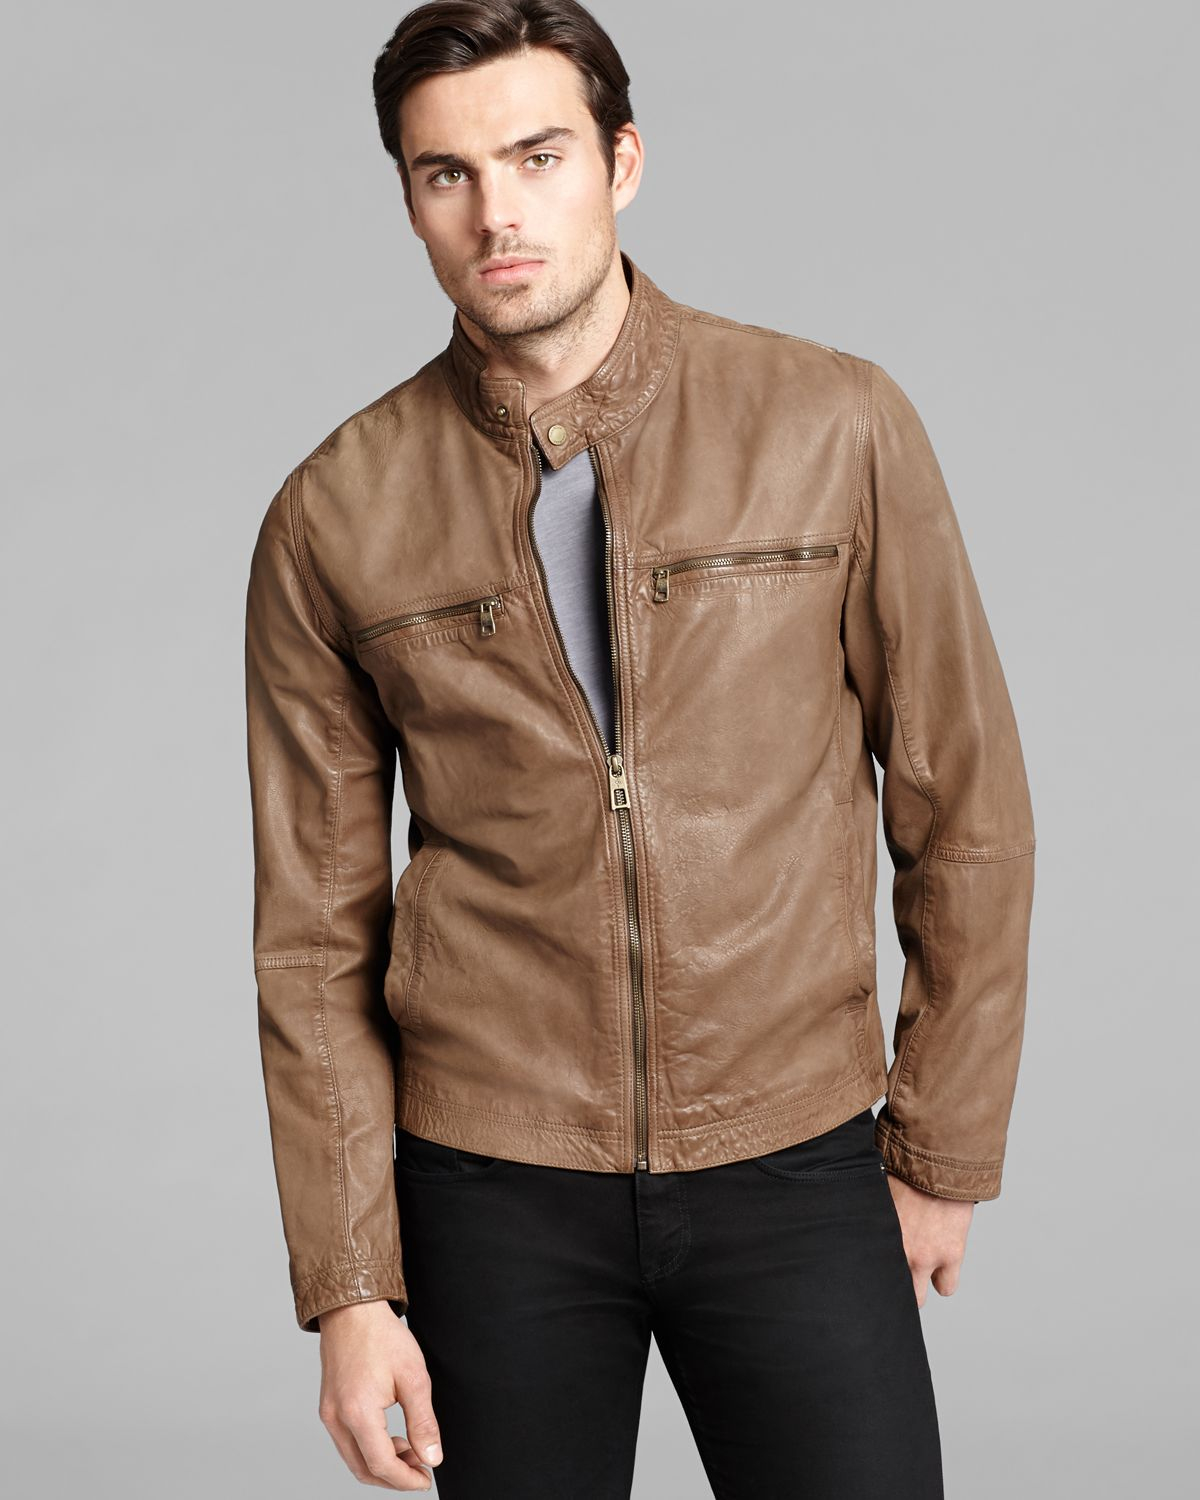 Gear up for your next ride with a great Men's Leather Motorcycle Jacket from Dennis Kirk. Great selection of leather jackets for men at the best prices!